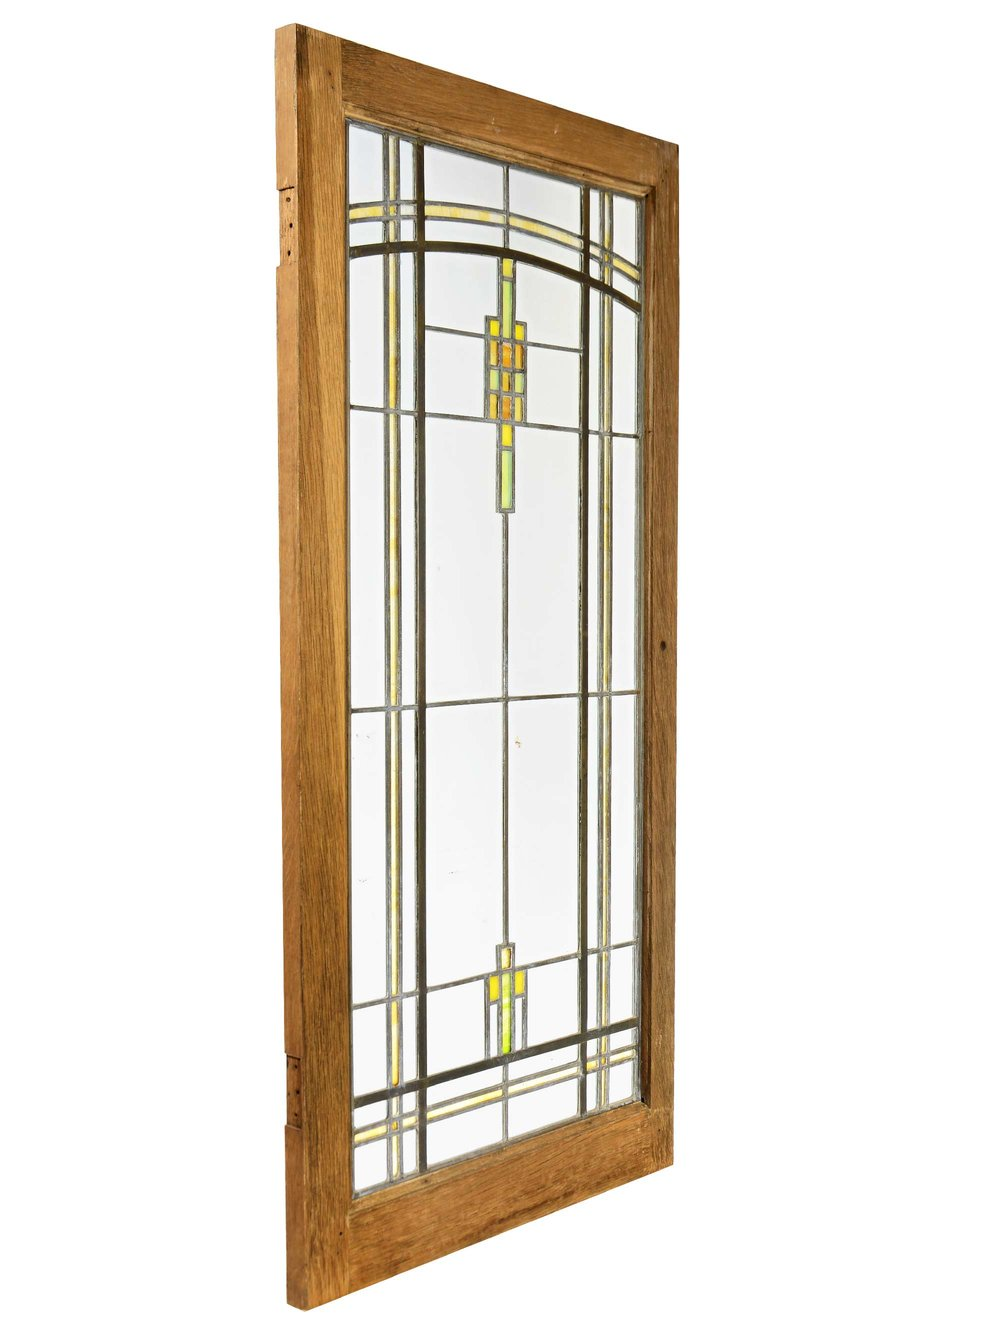 46826-elmslie-leaded-glass-window-back.jpg